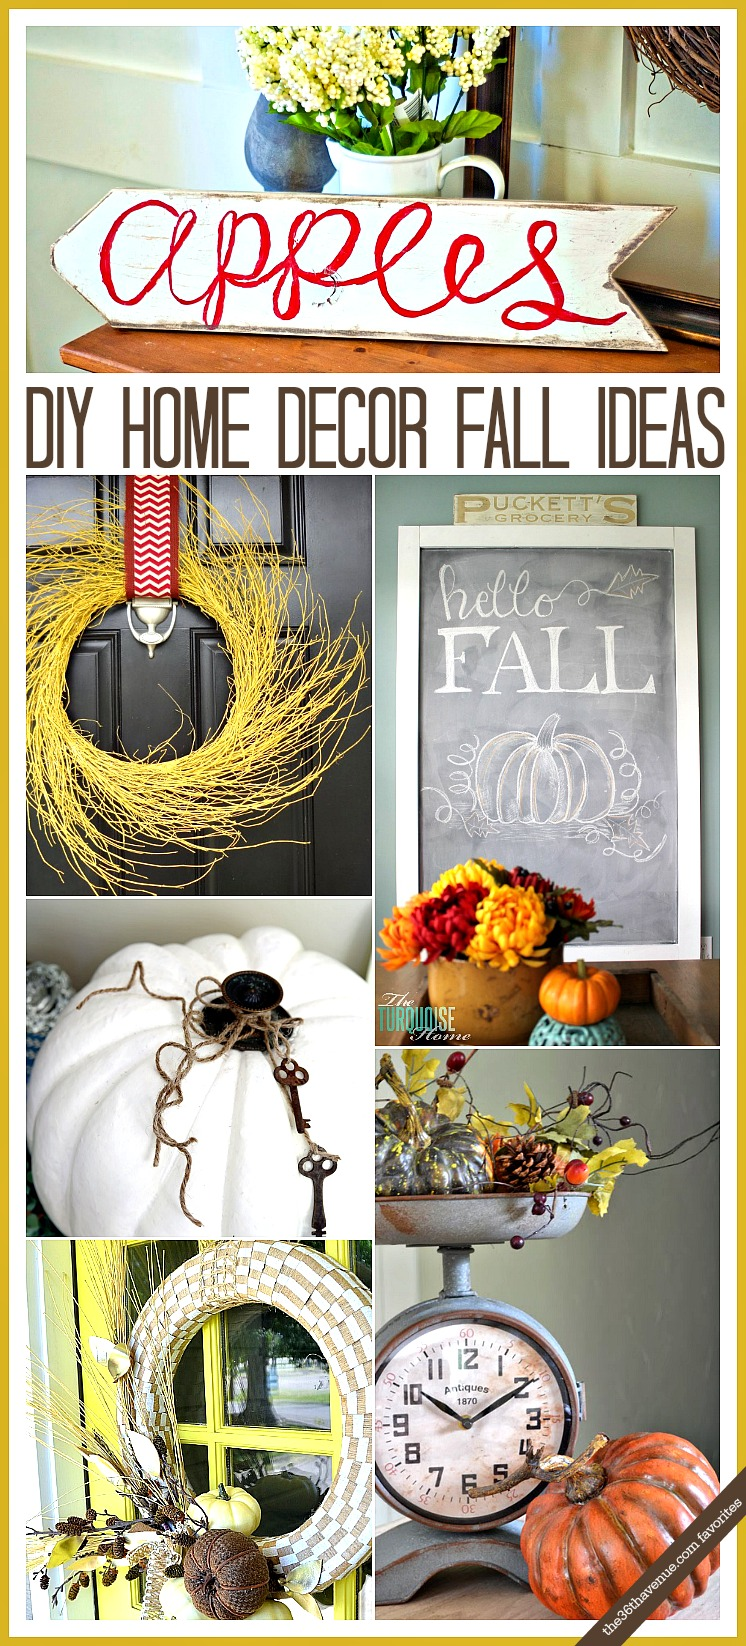 Fall Decor Ideas at the36thavenue.com